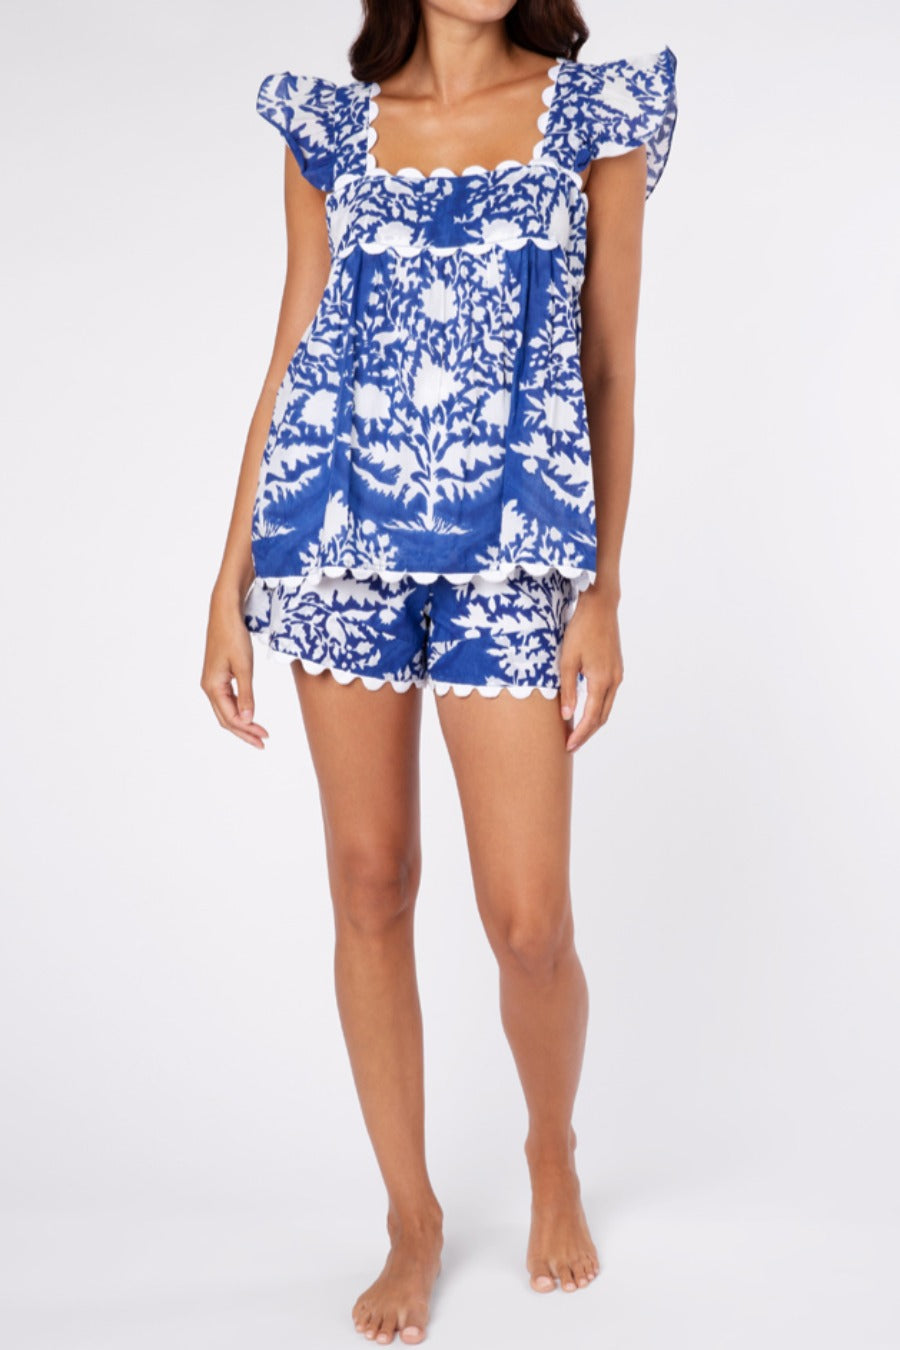 Baby Doll Top in Palladio Block Print- Blue